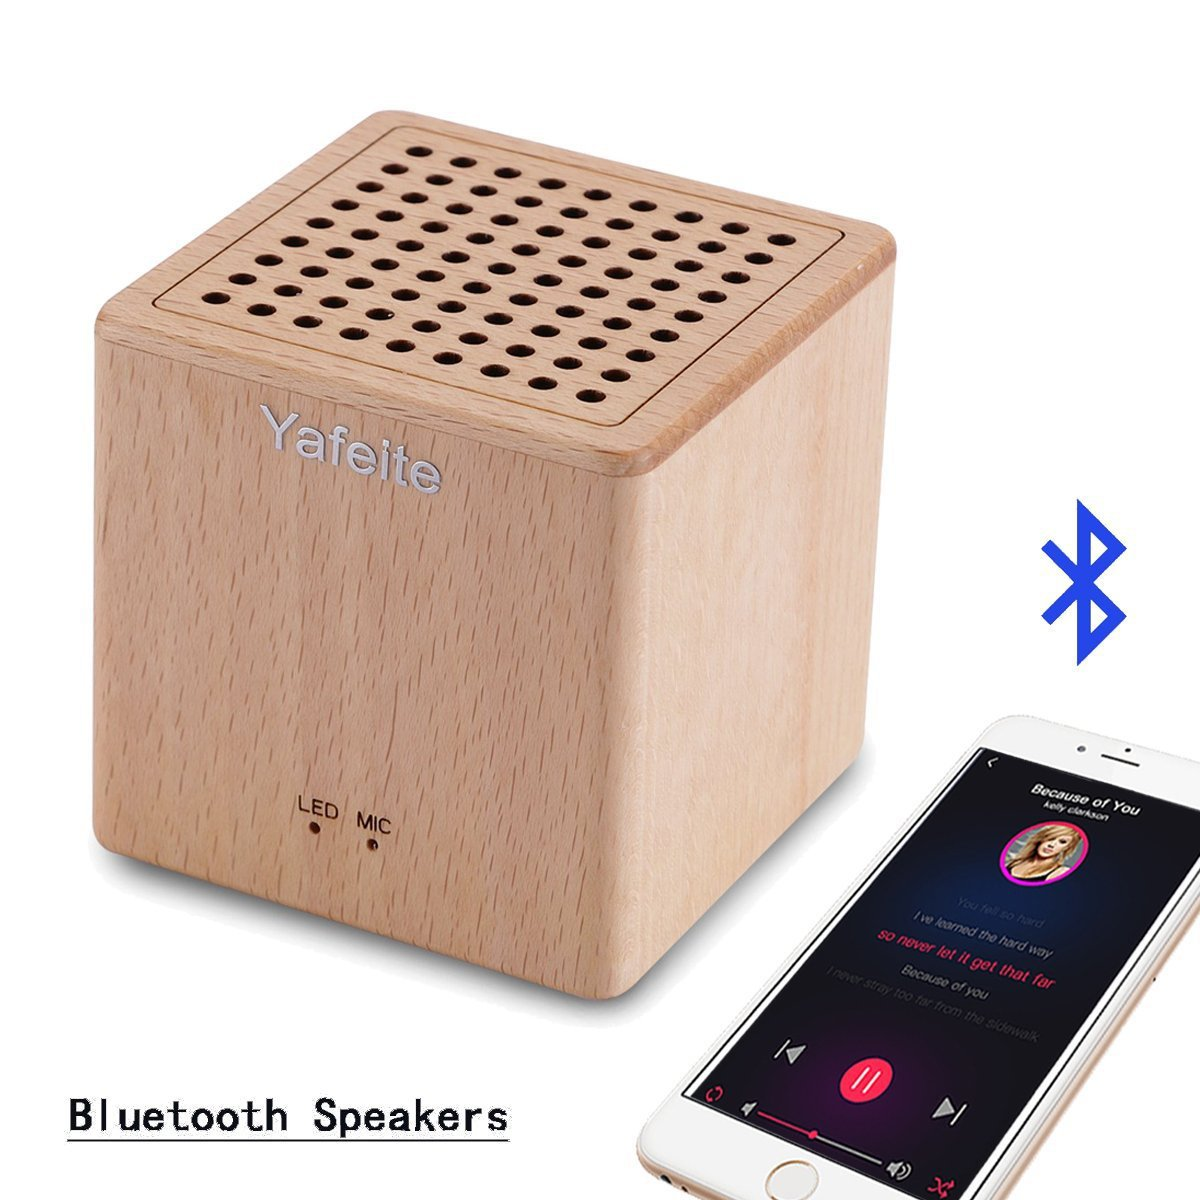 Portable Bluetooth Speakers Yafeite Wireless Computer Speakers Built-in Mic Answer The Phone/FM Radio Support Micro TF Card/USB Input/AUX Line-in … (Yellow)